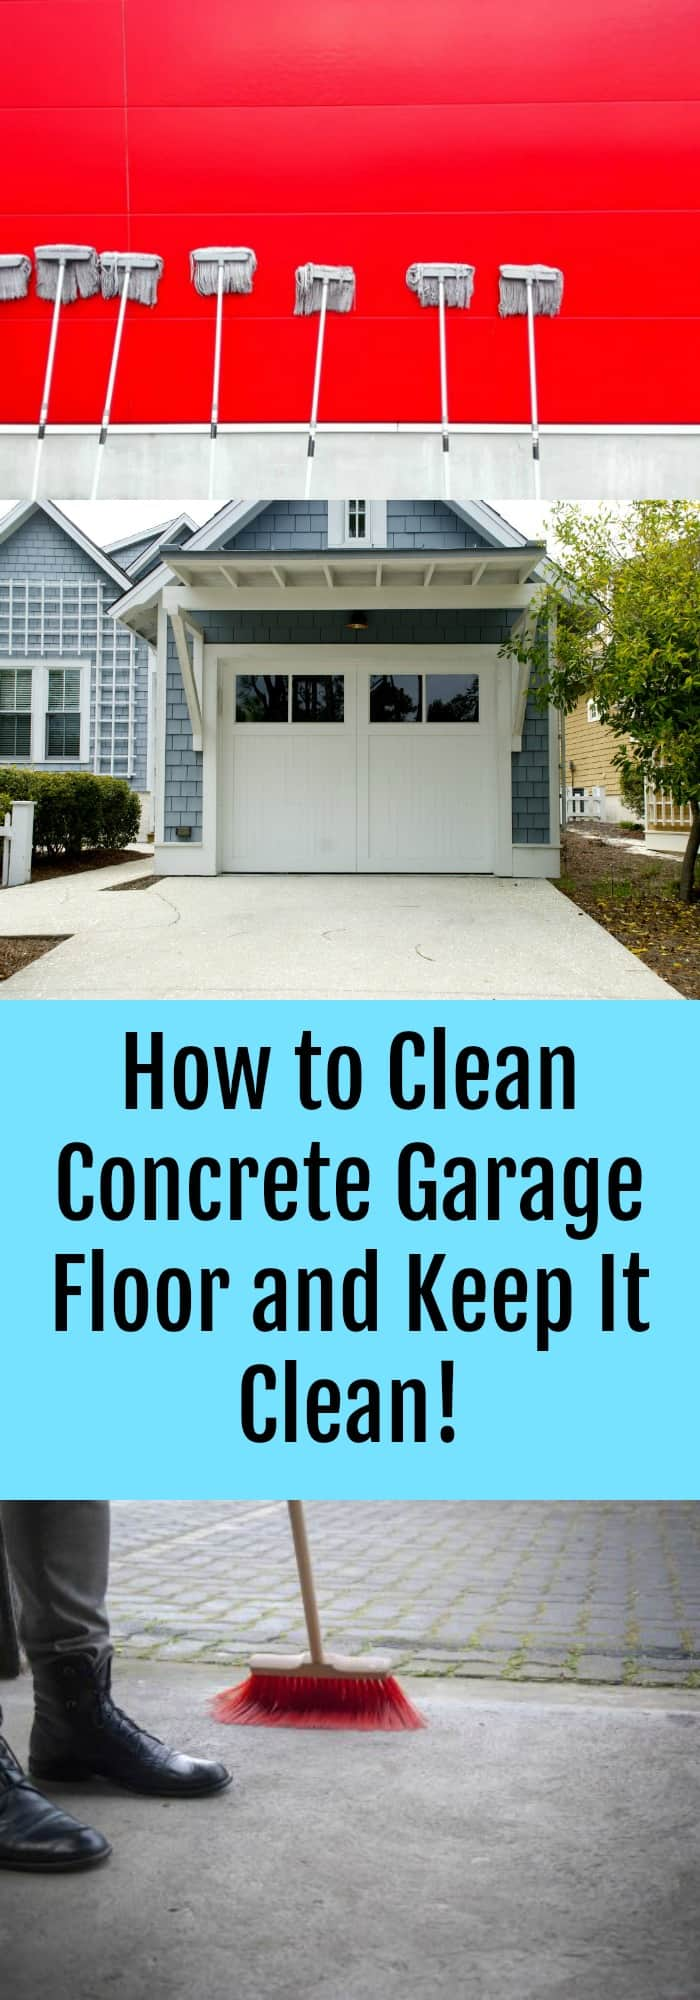 How to Clean Concrete Garage Floor and Keep It Clean